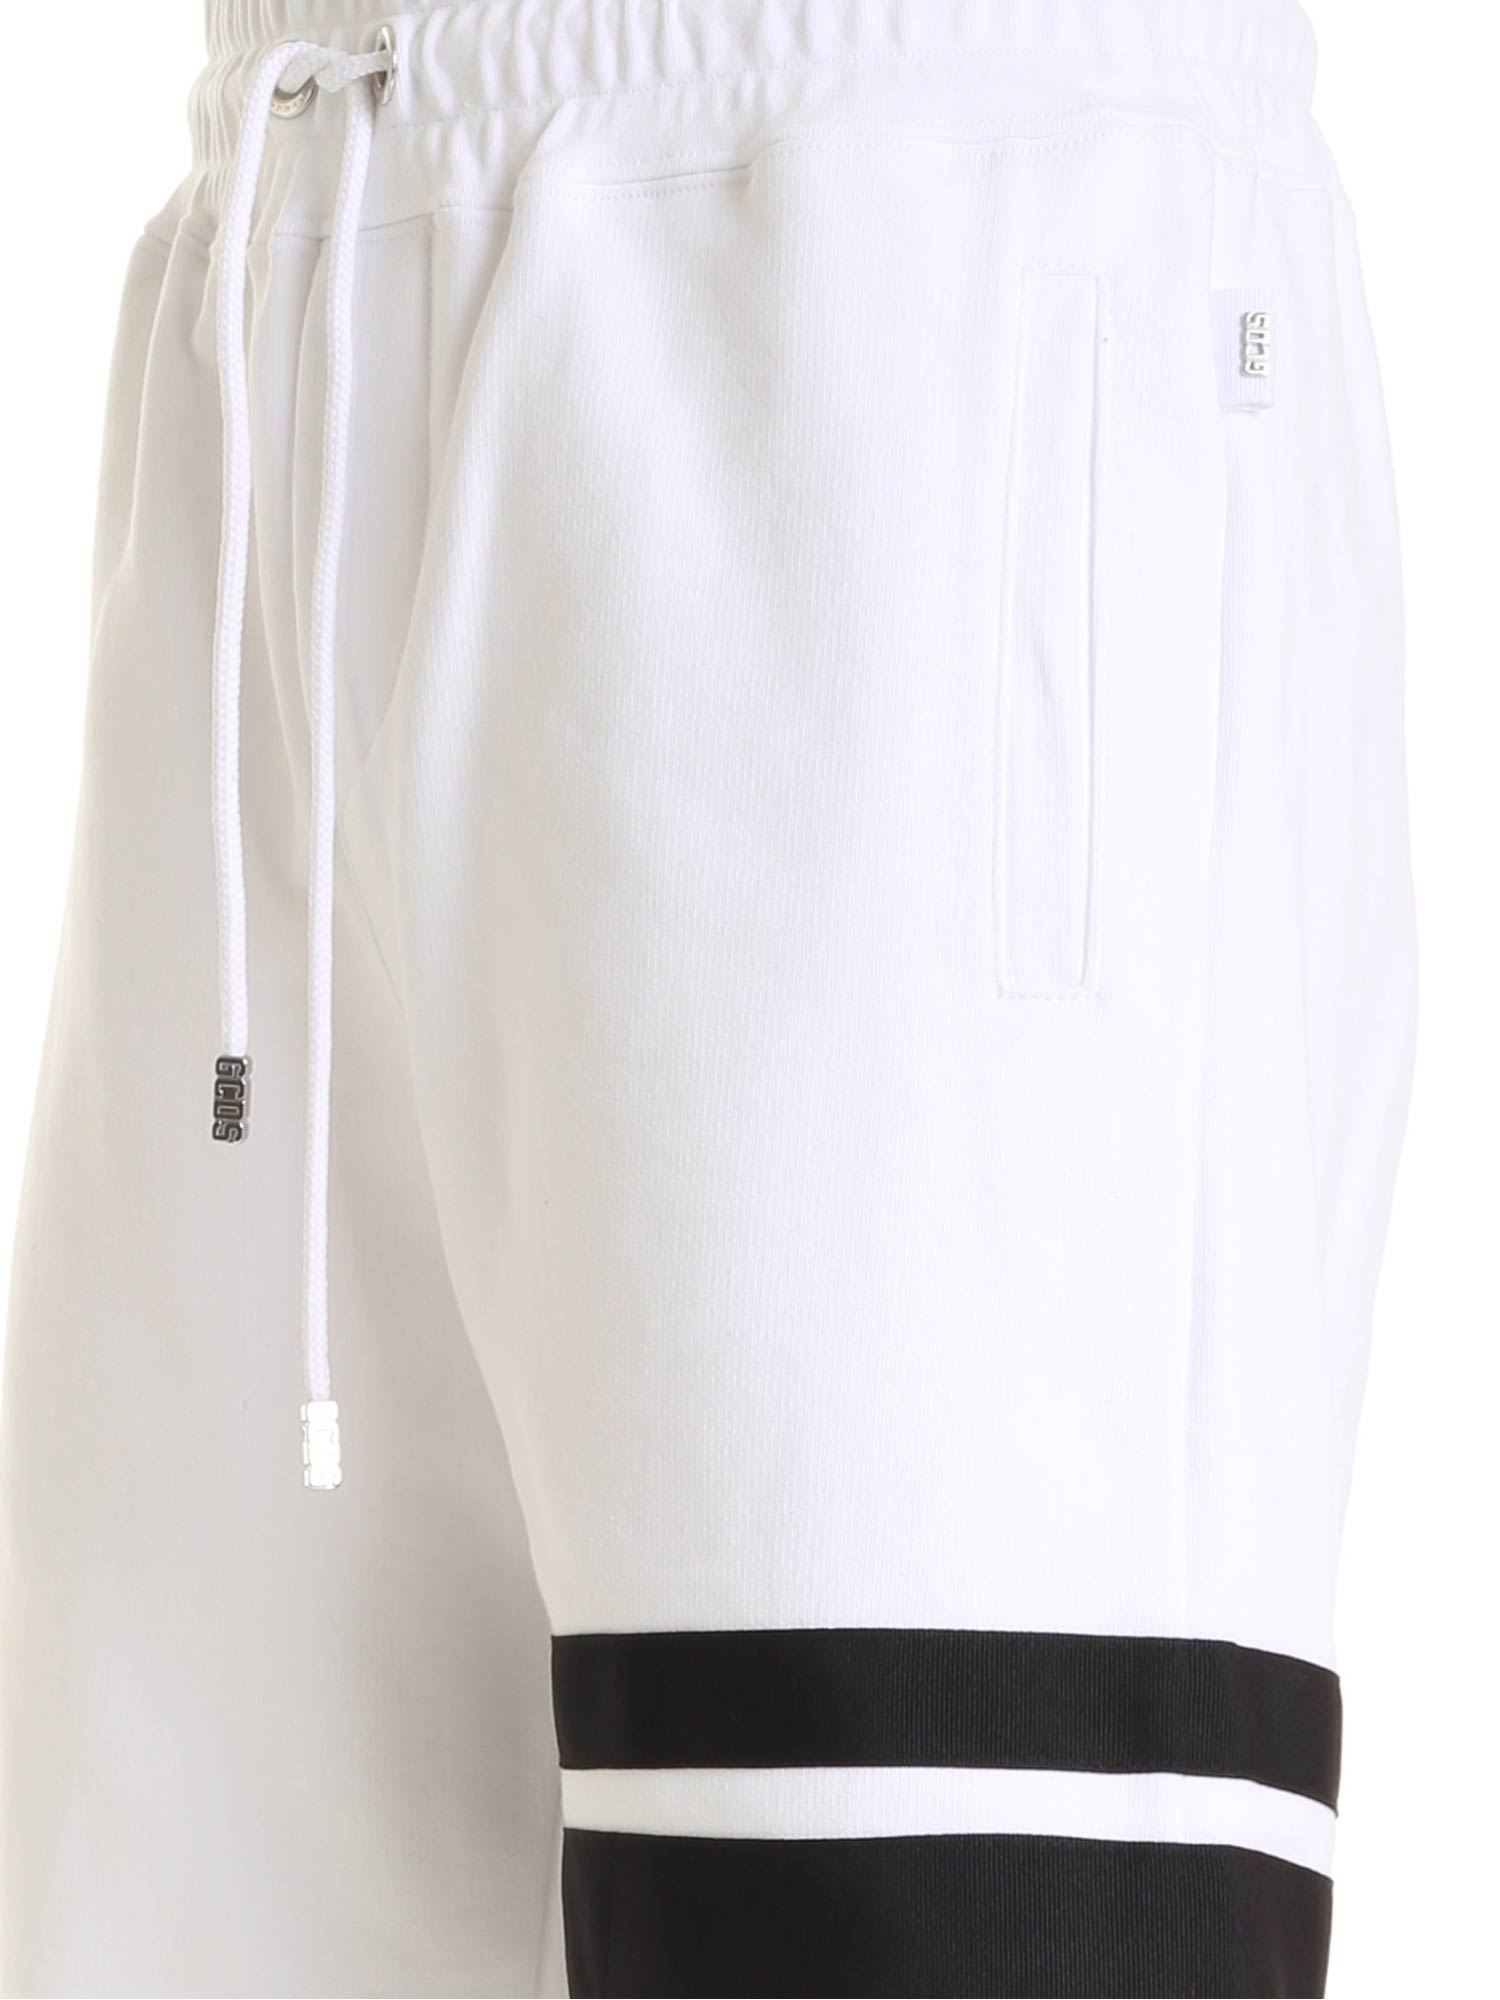 GCDS XCIV EMBROIDERY SHORTS IN WHITE